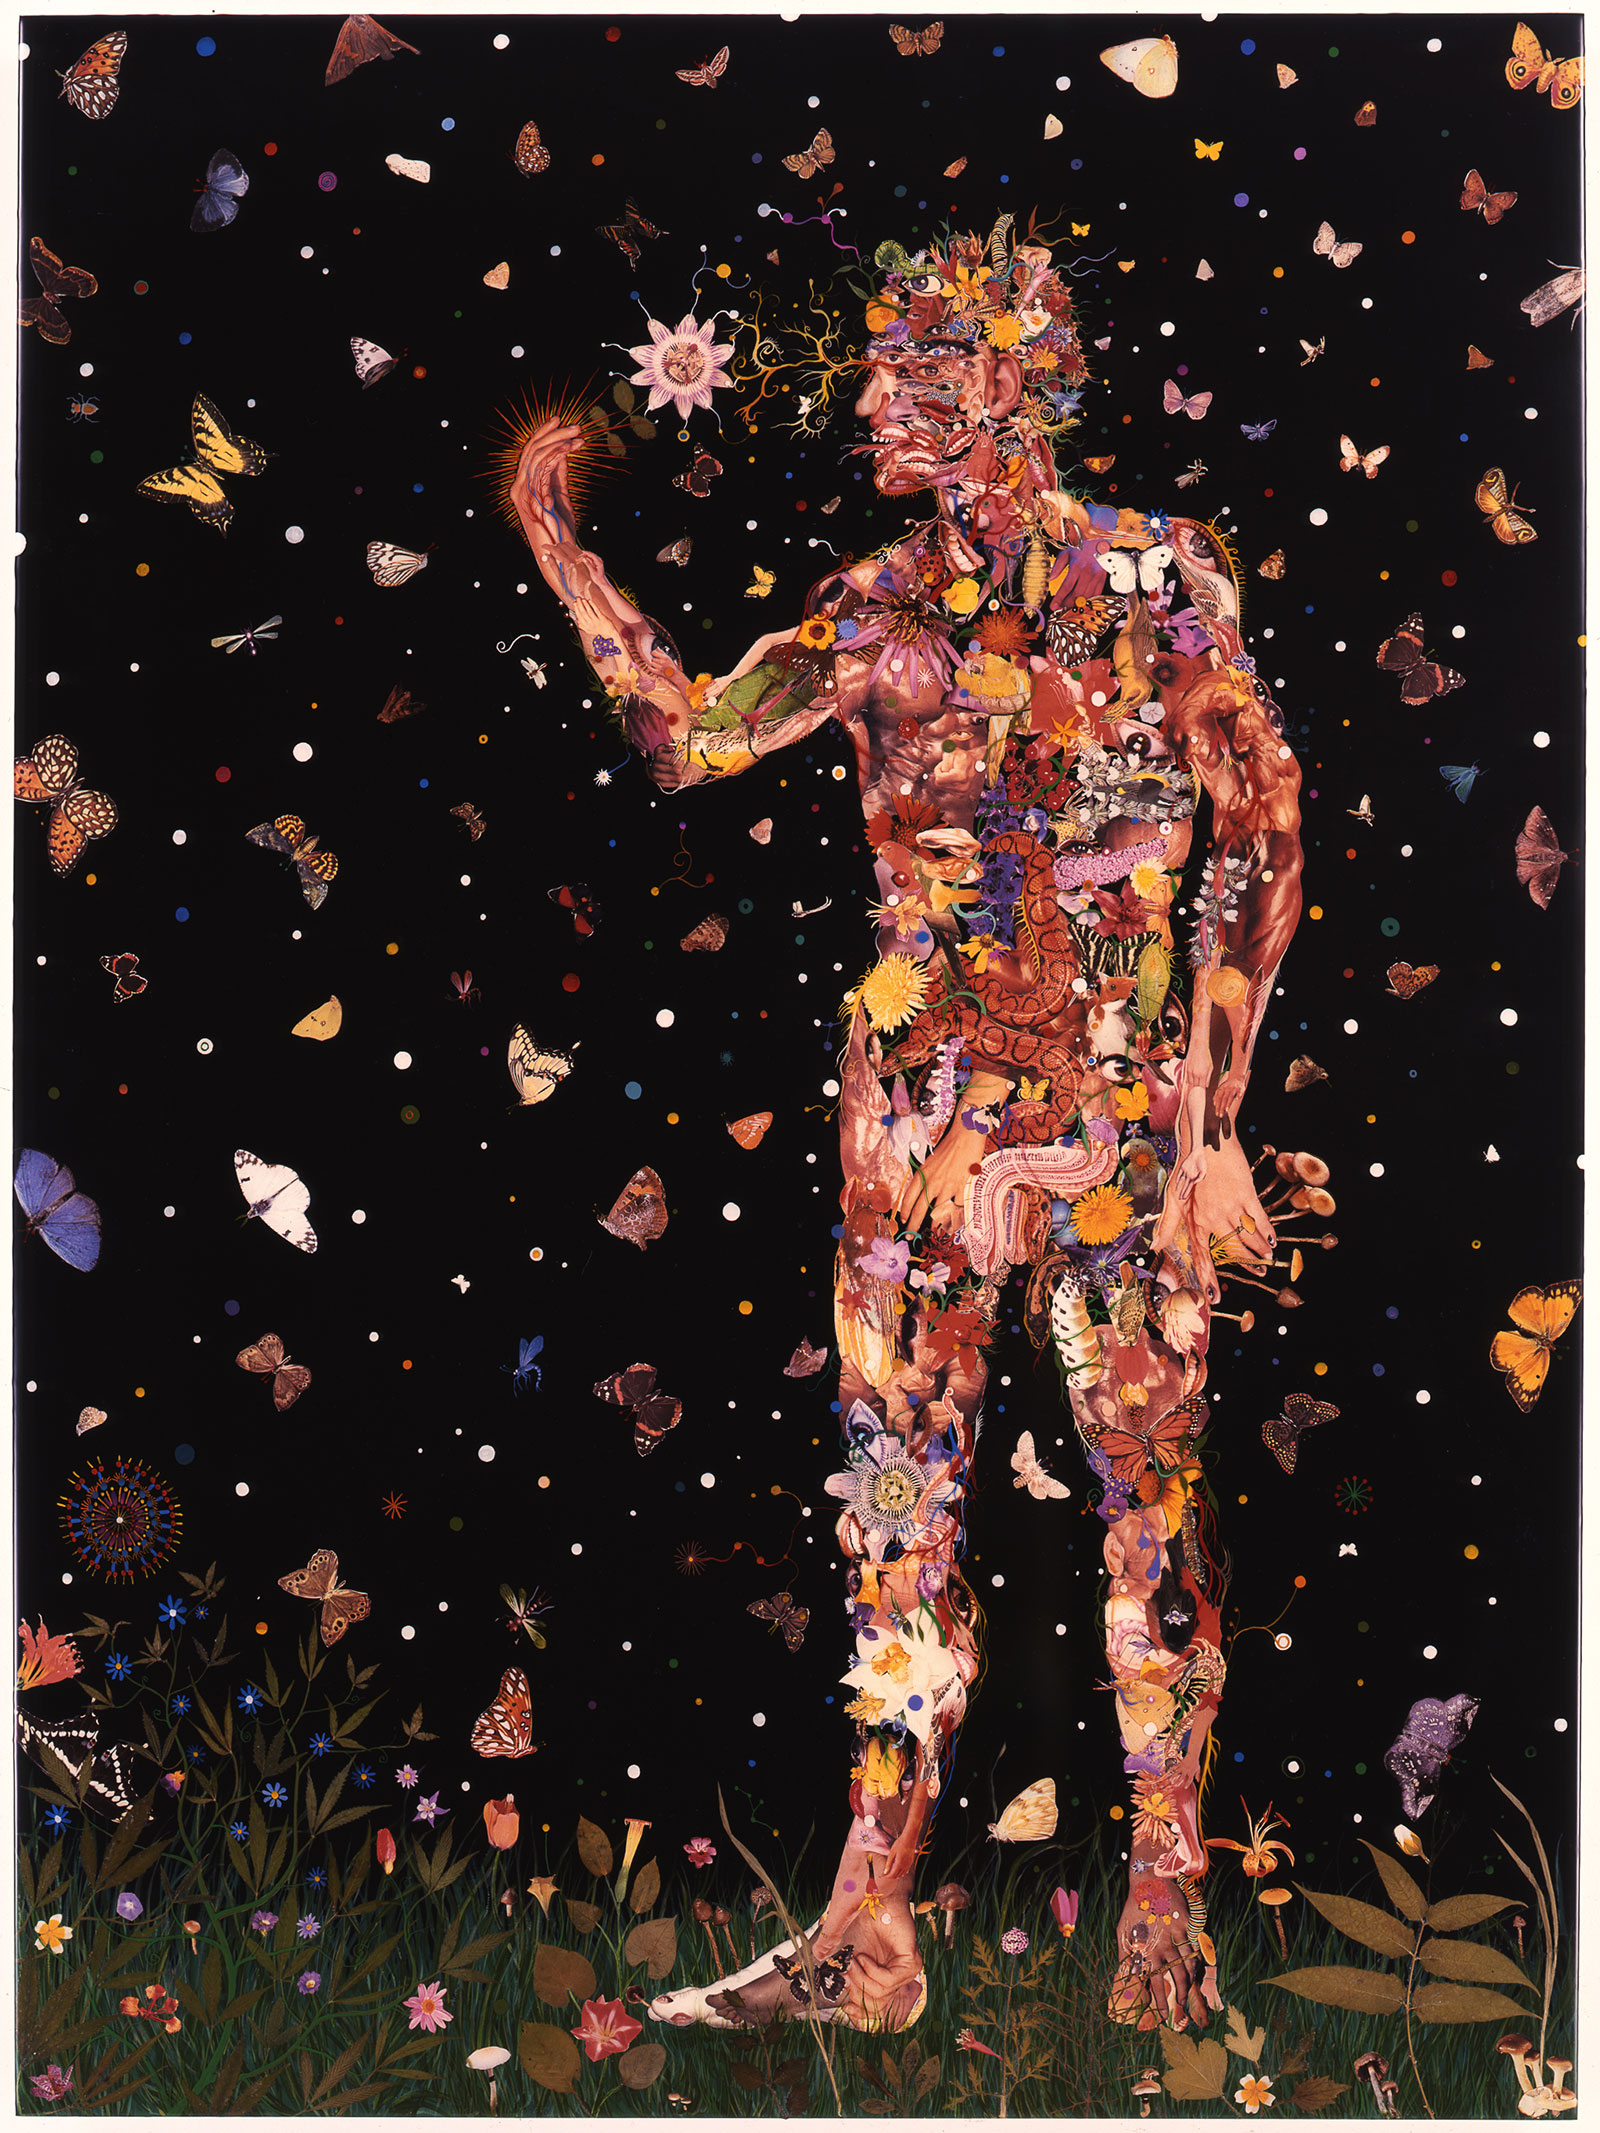 man holding flower and surrounded by butterflies